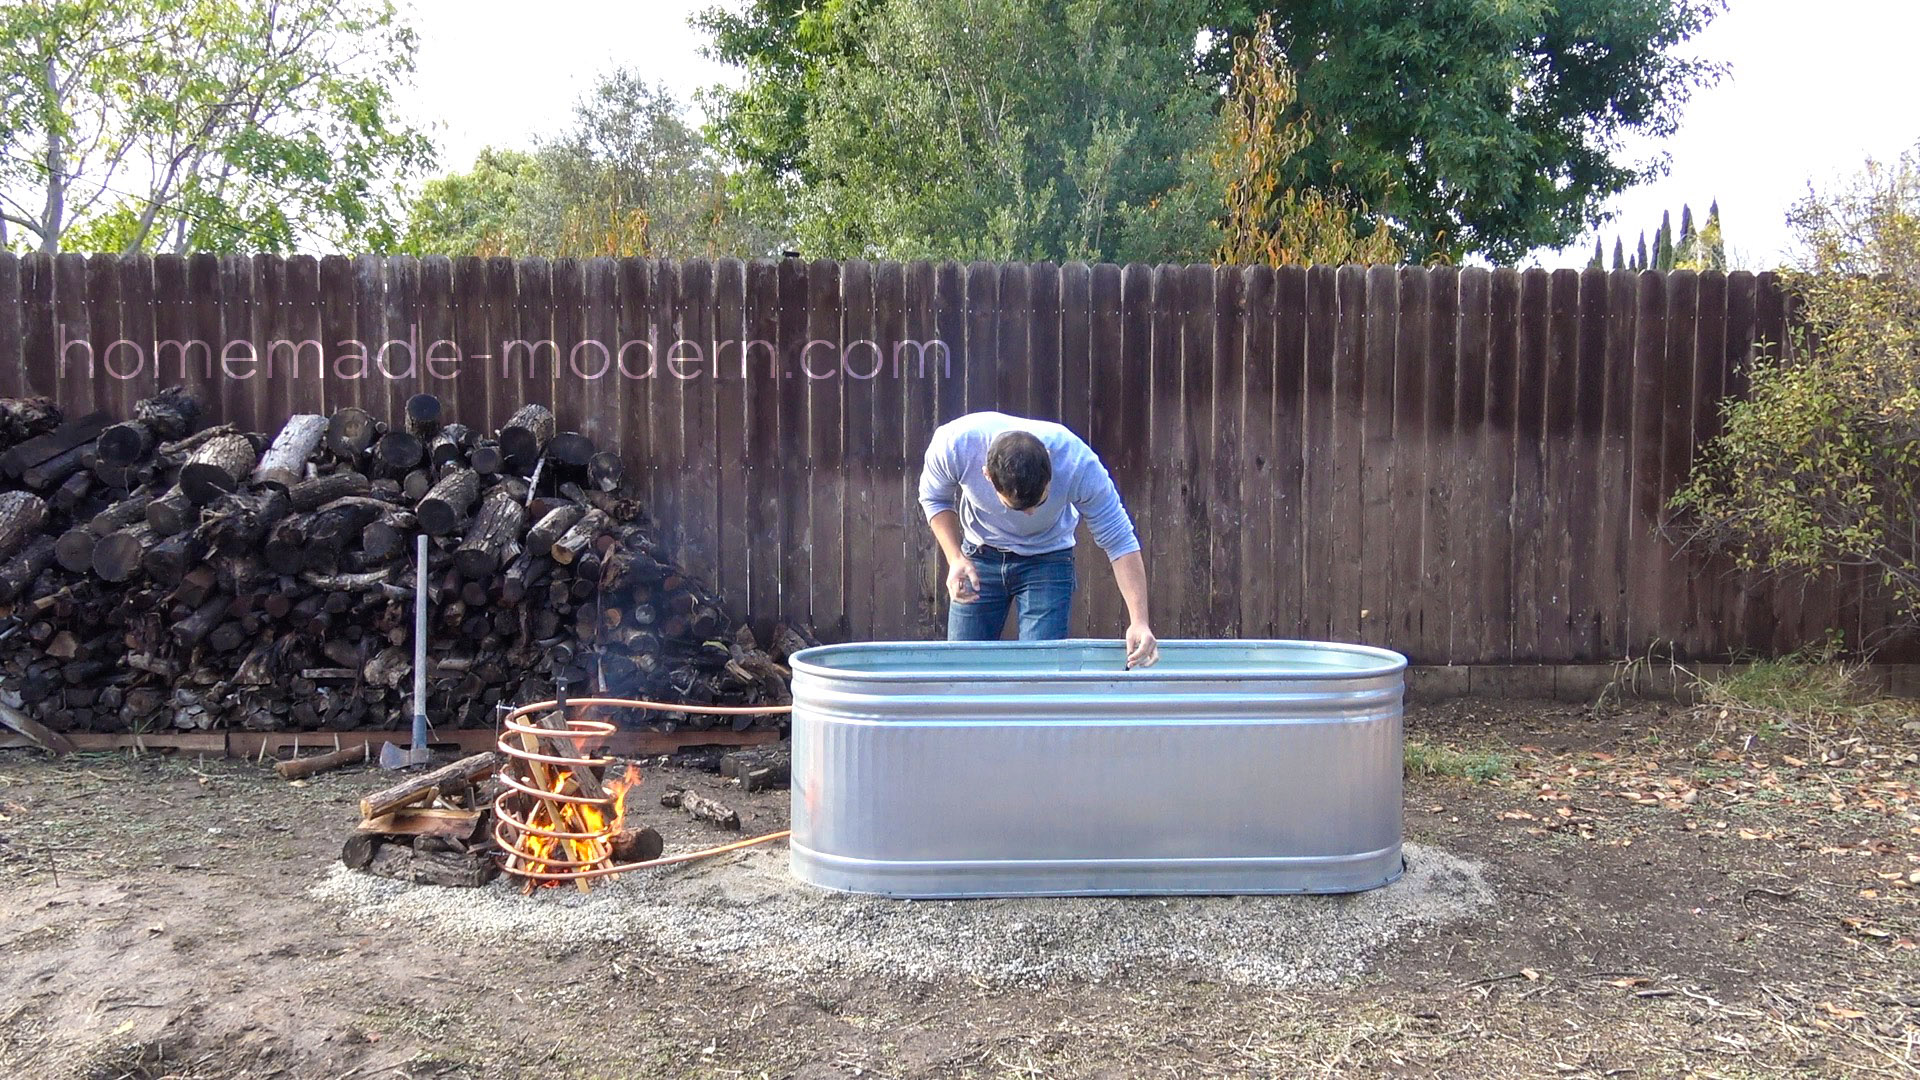 Homemade Modern Ep112 Diy Wood Fired Hot Tub